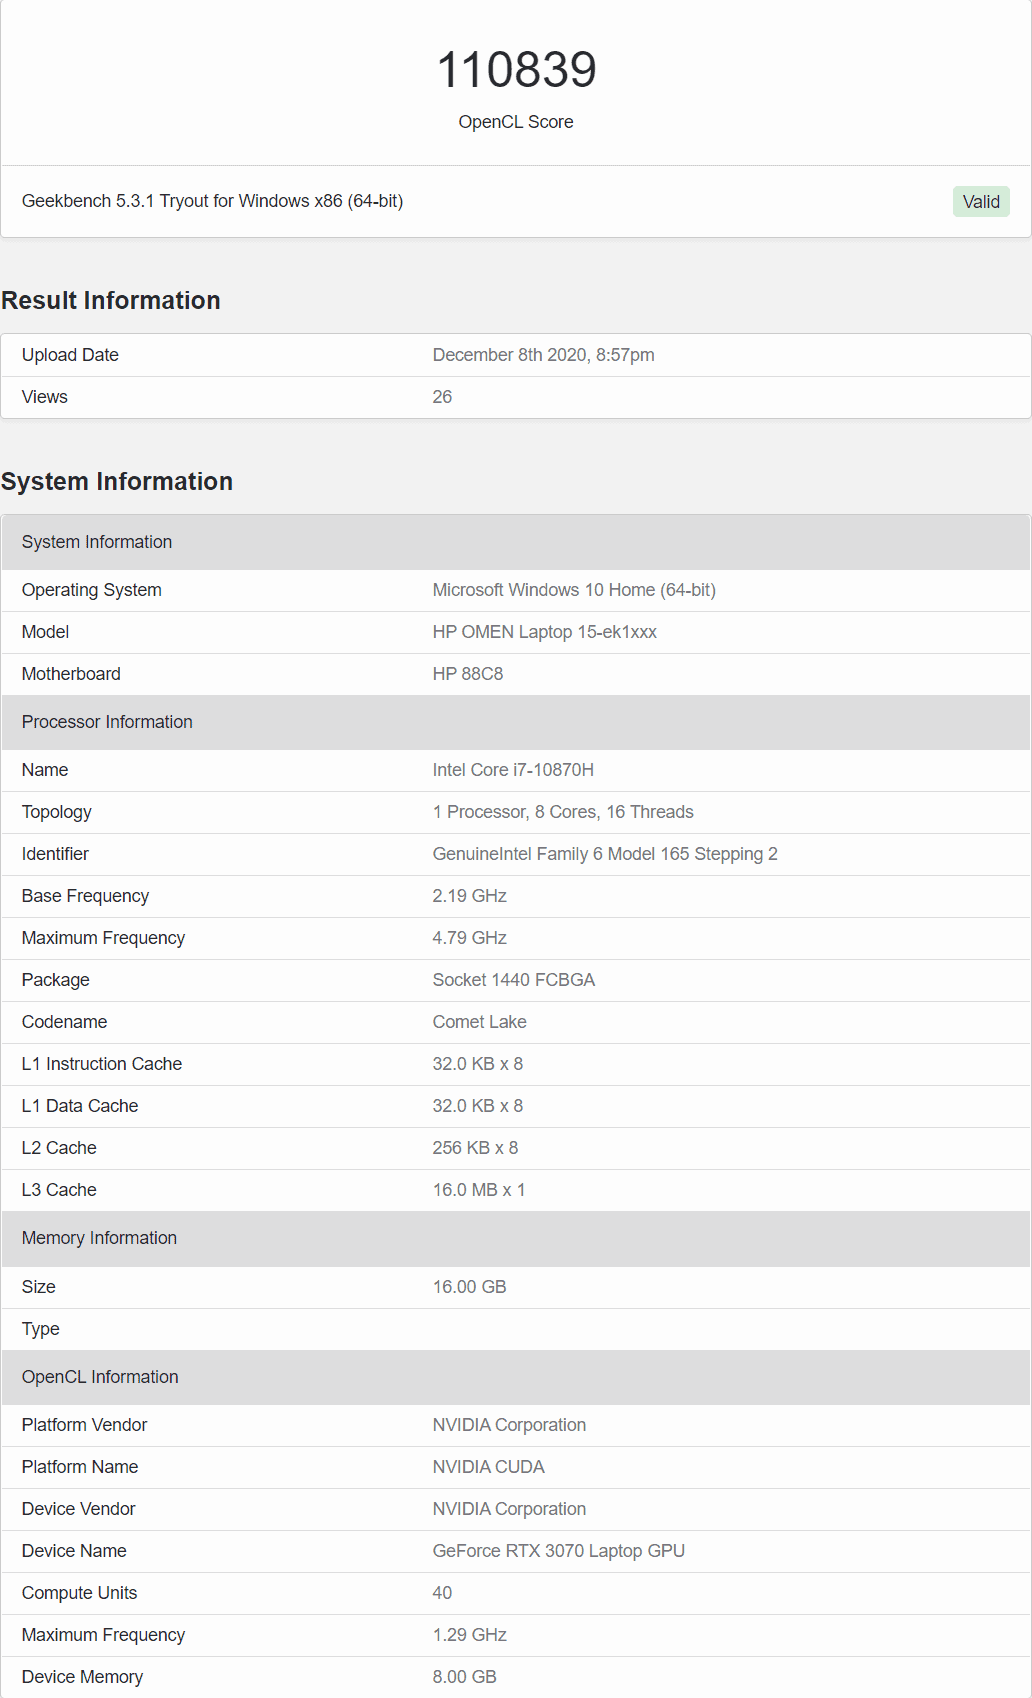 RTX 3070 mobile geekbench opencl test